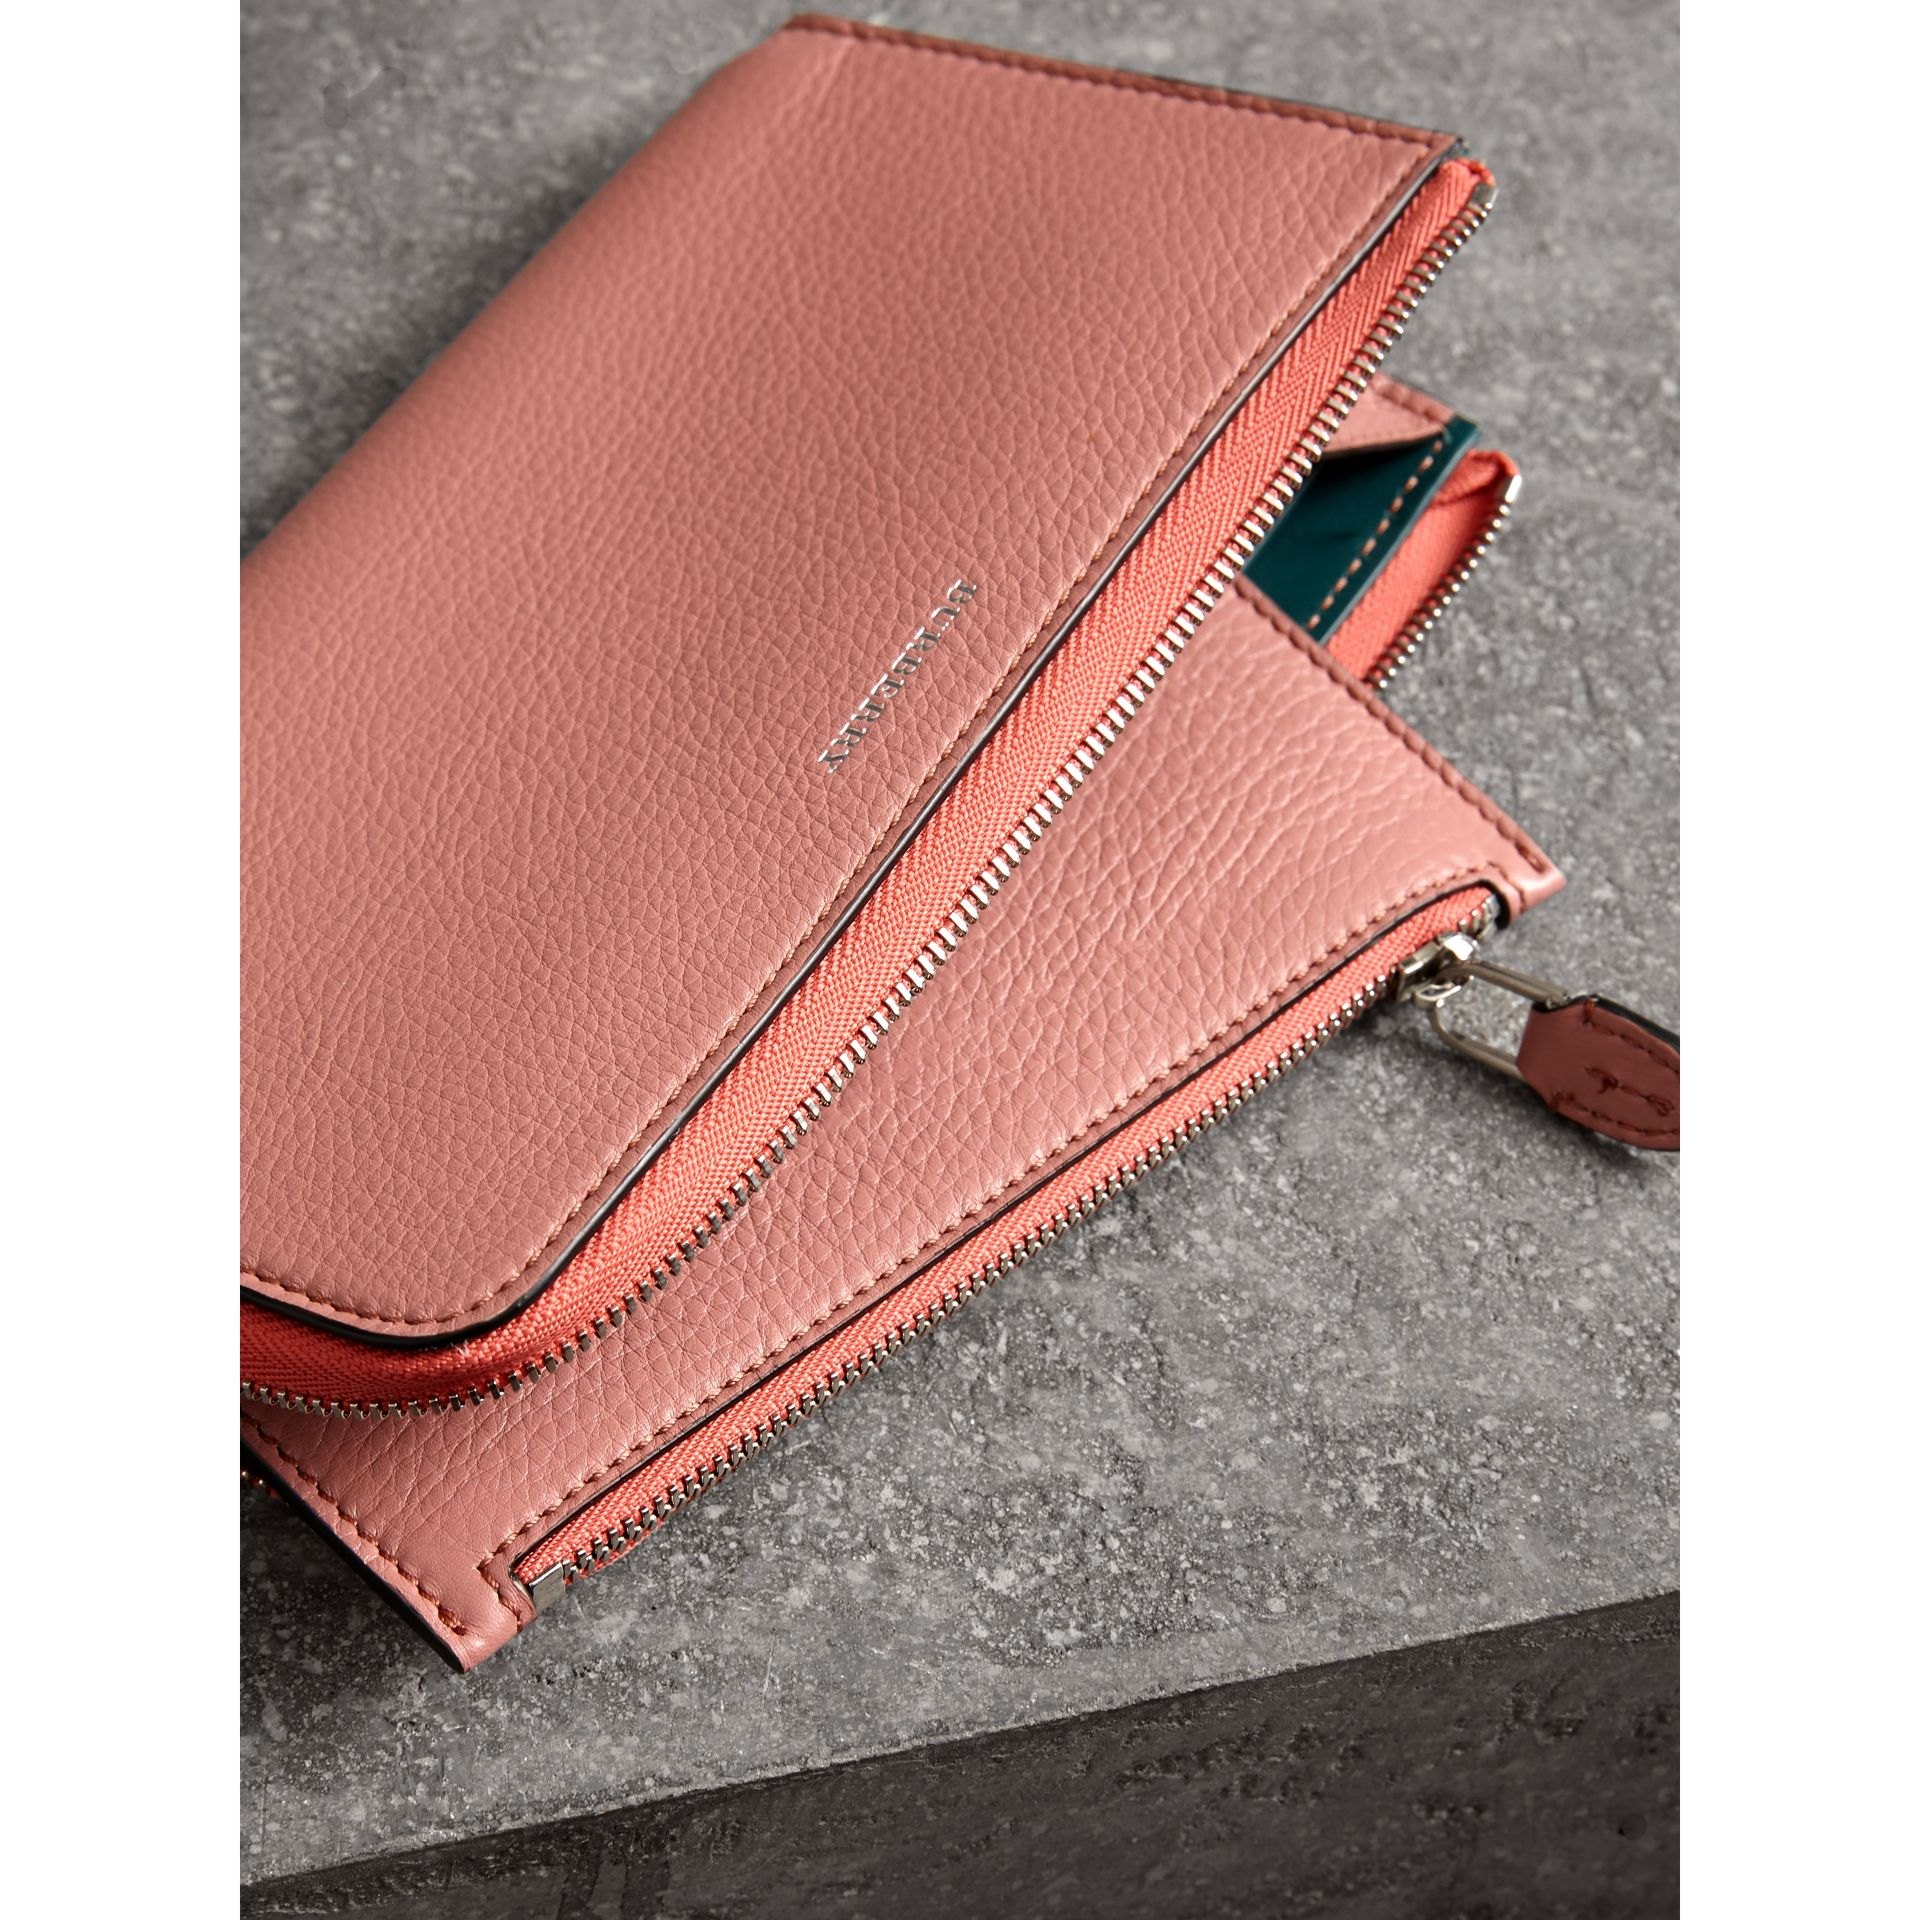 Two-tone Leather Ziparound Wallet and Coin Case in Dusty Rose - Women | Burberry - gallery image 3